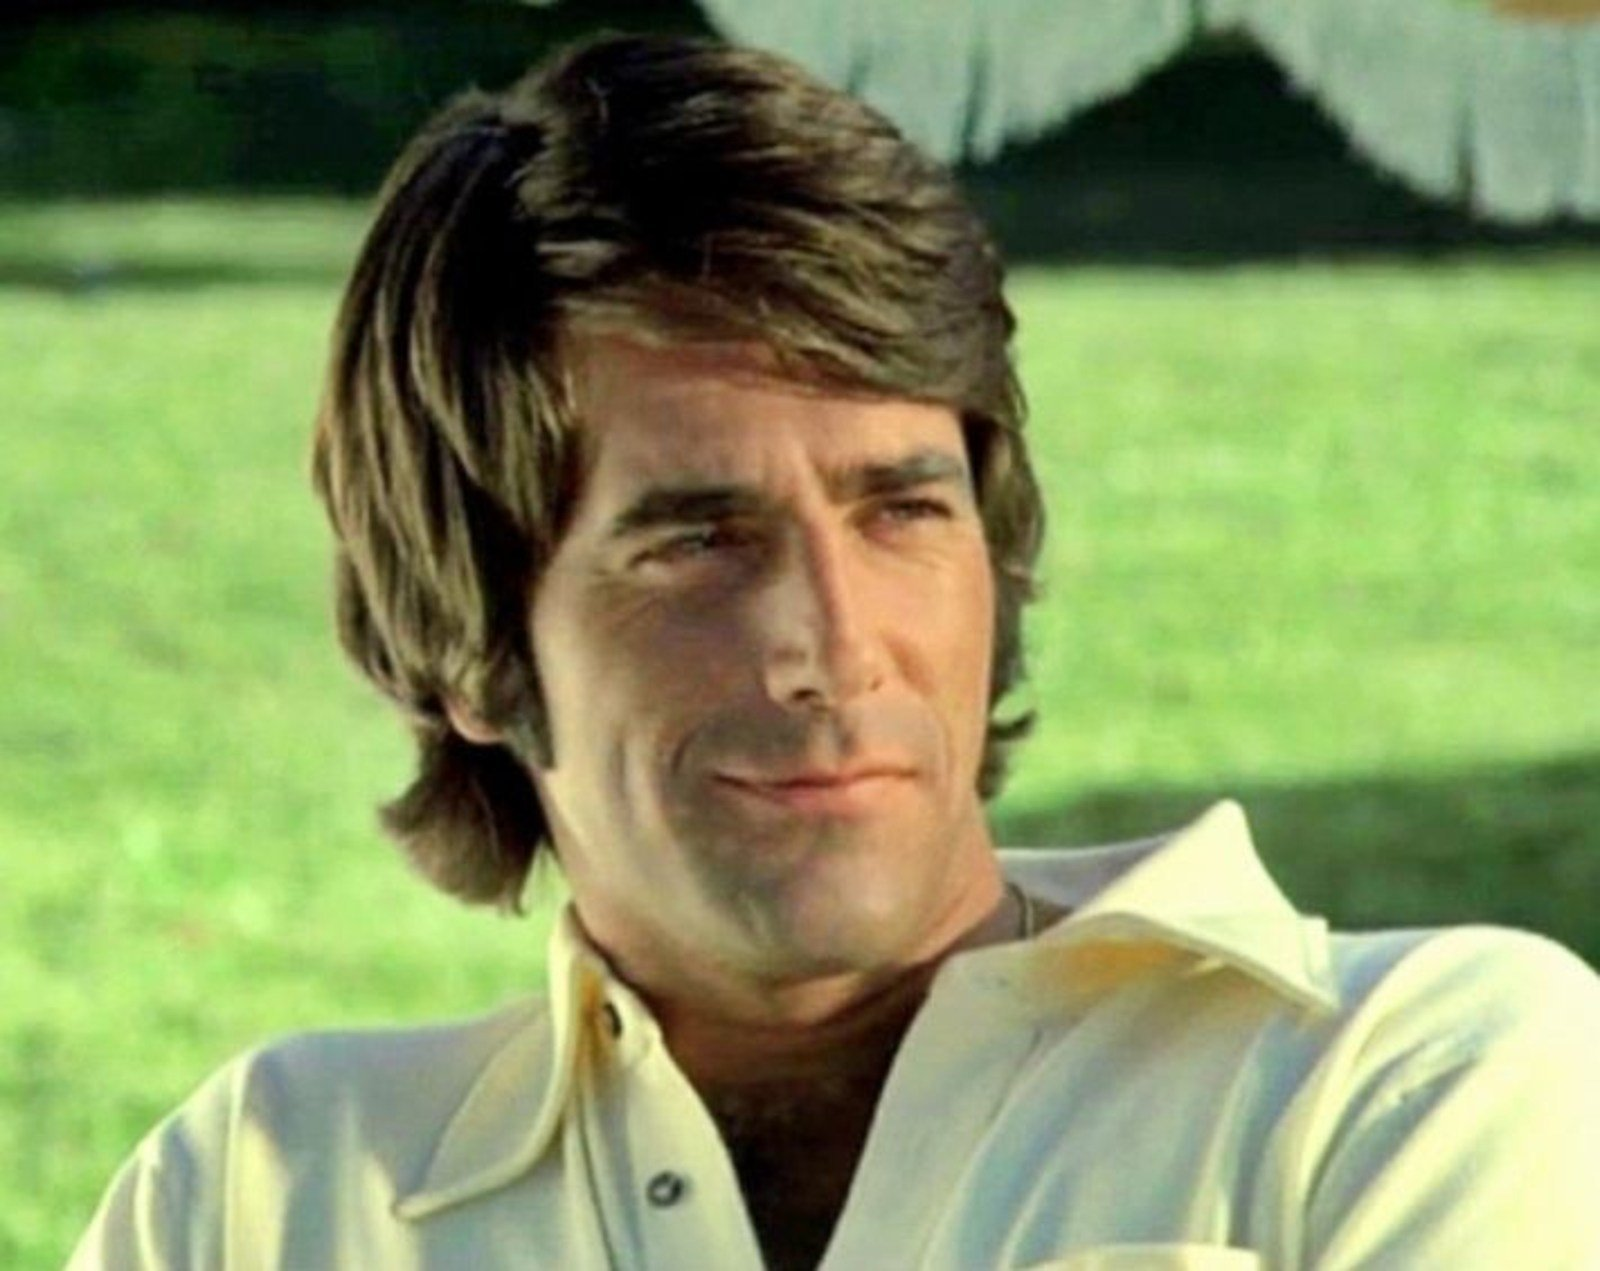 Sam Elliott in one of his first films